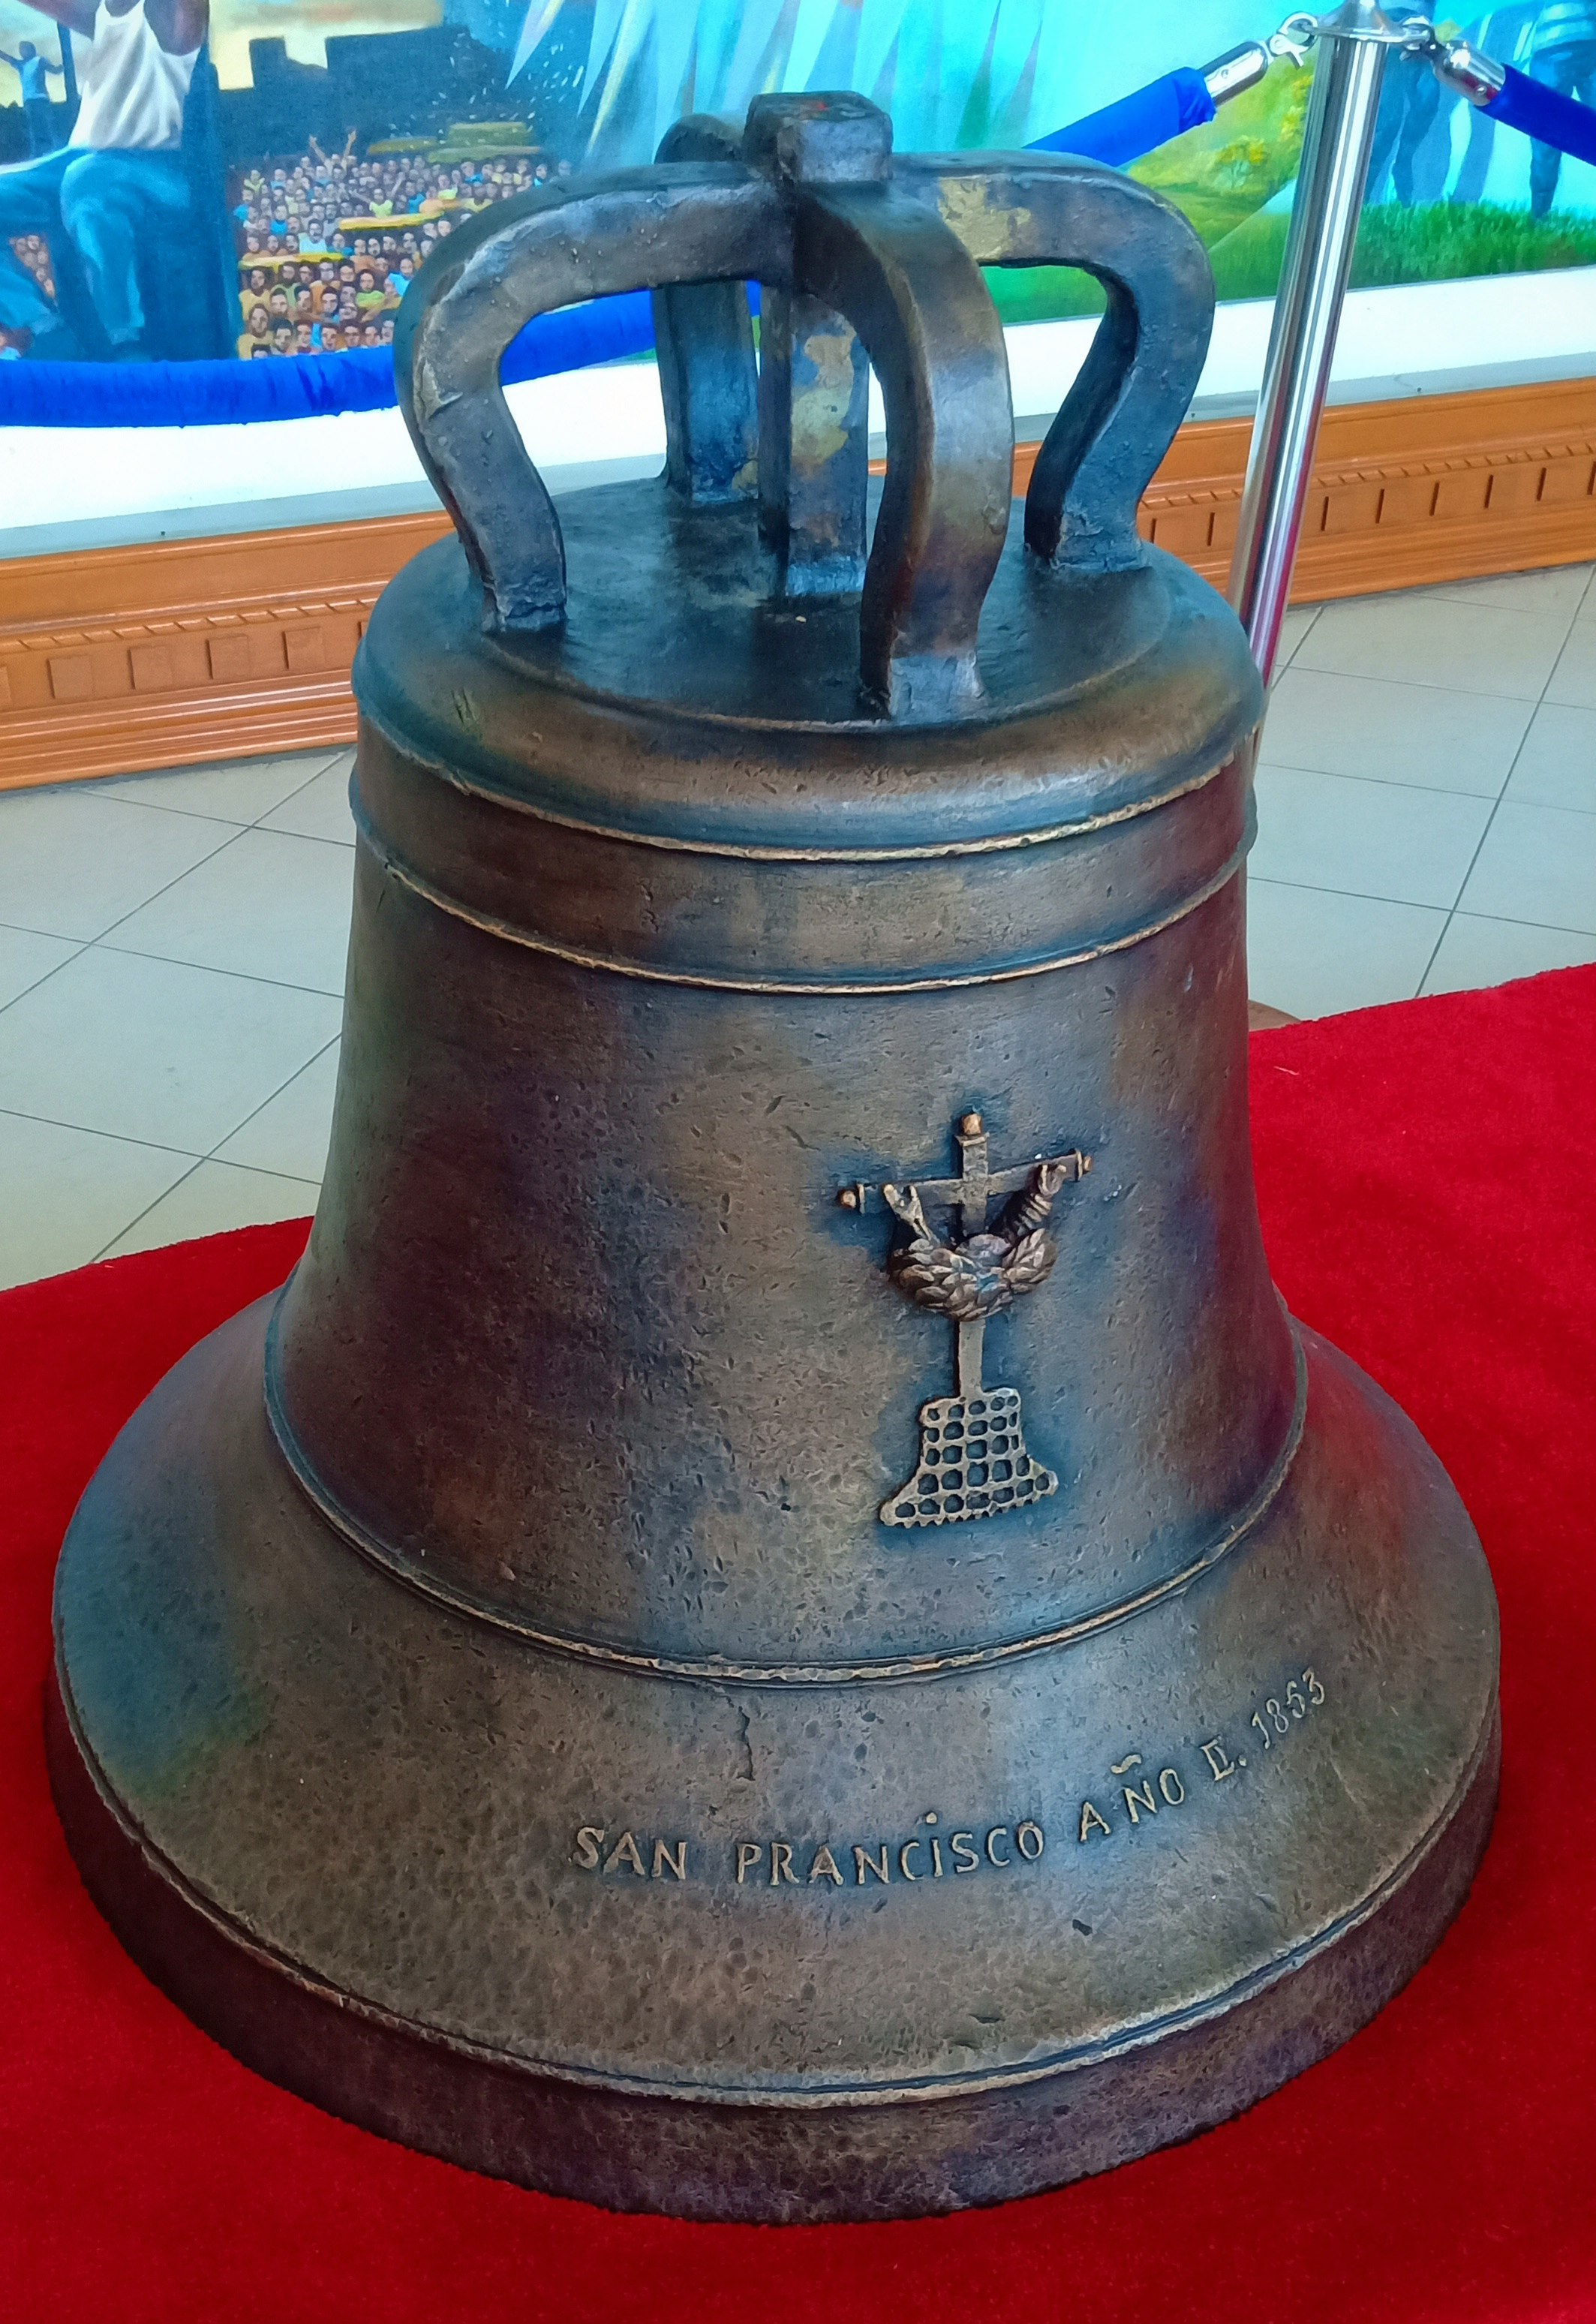 Balangiga bells - The complete information and online sale with free